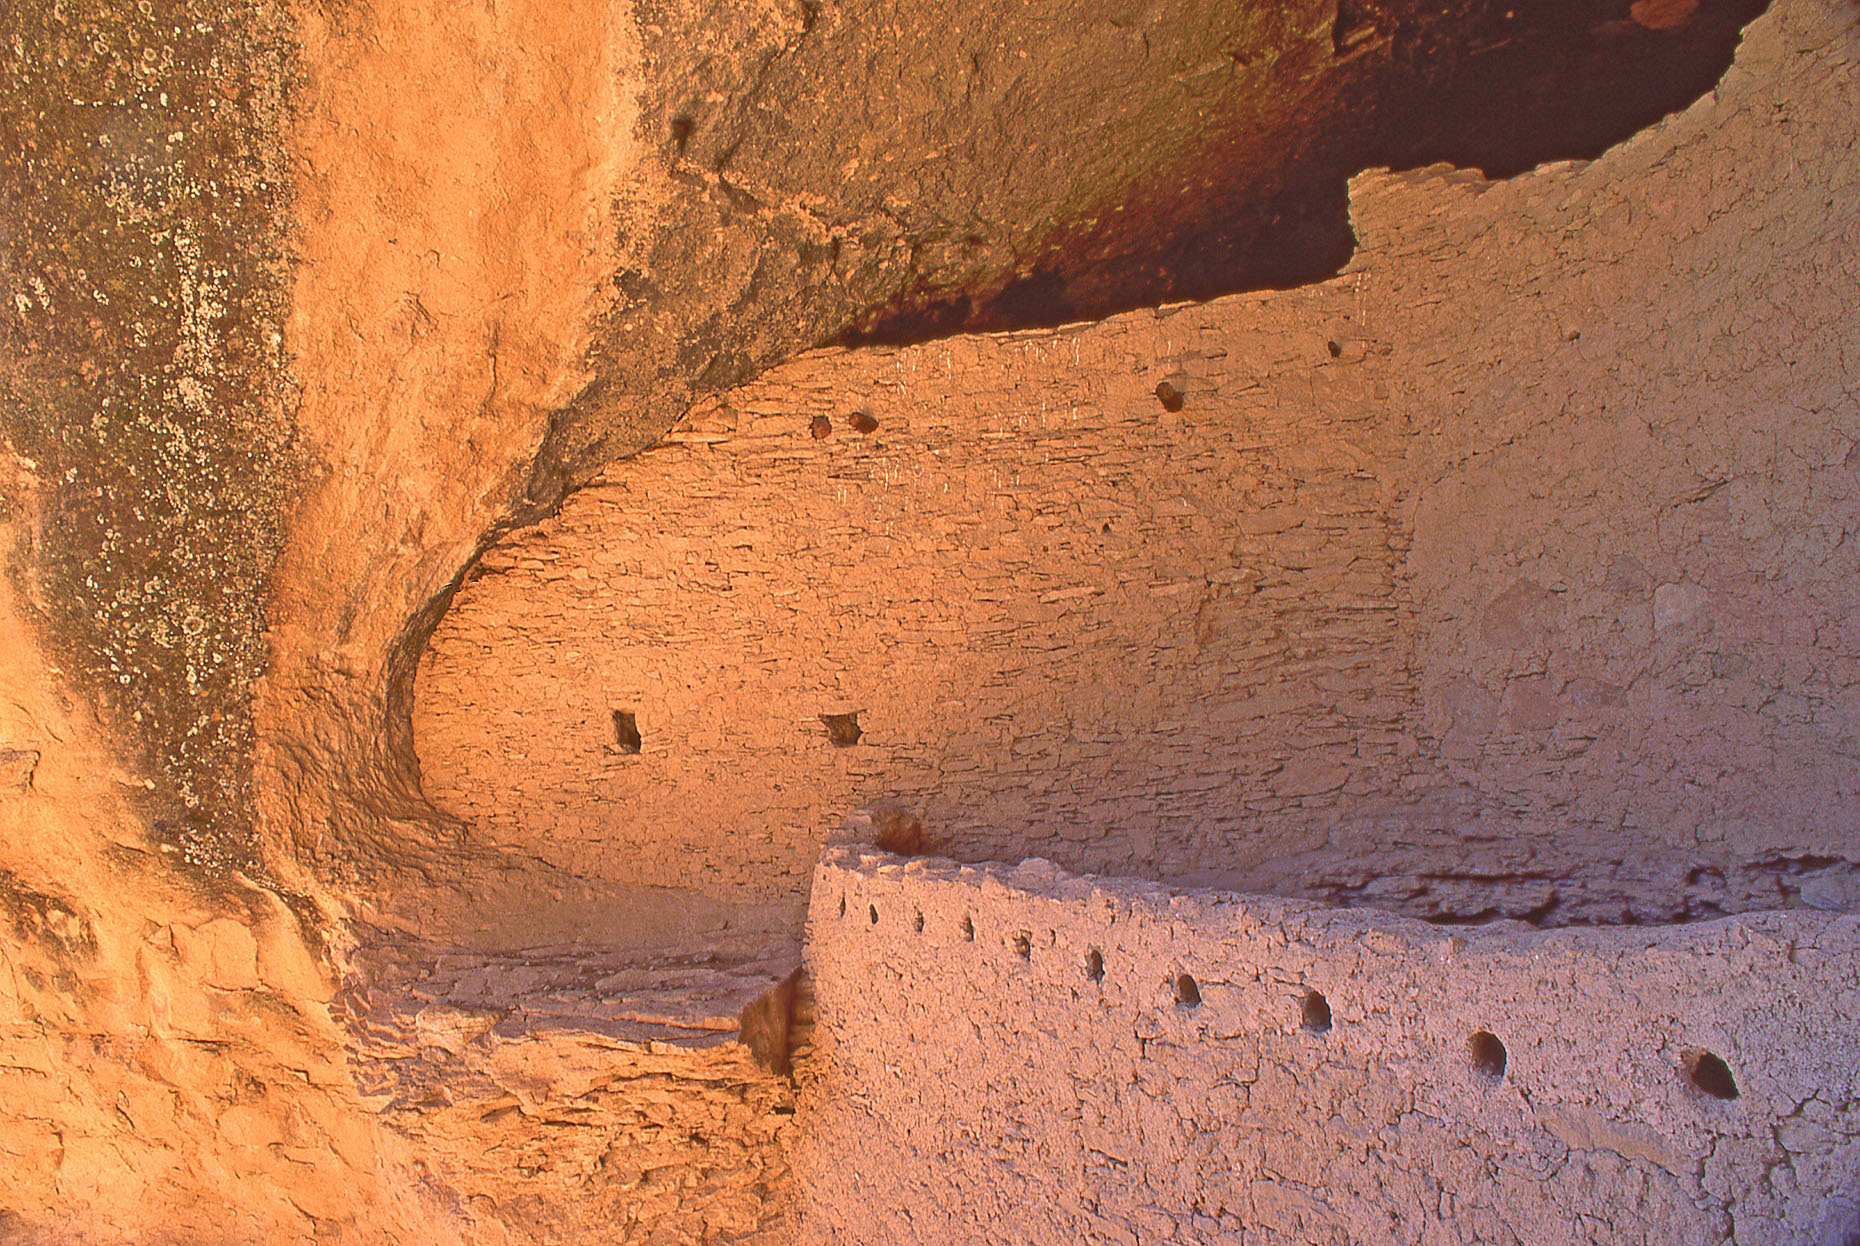 Gila Cliff Dwellings National Monument, John Annerino, NM, Ancestral Mogollon cave dwellings